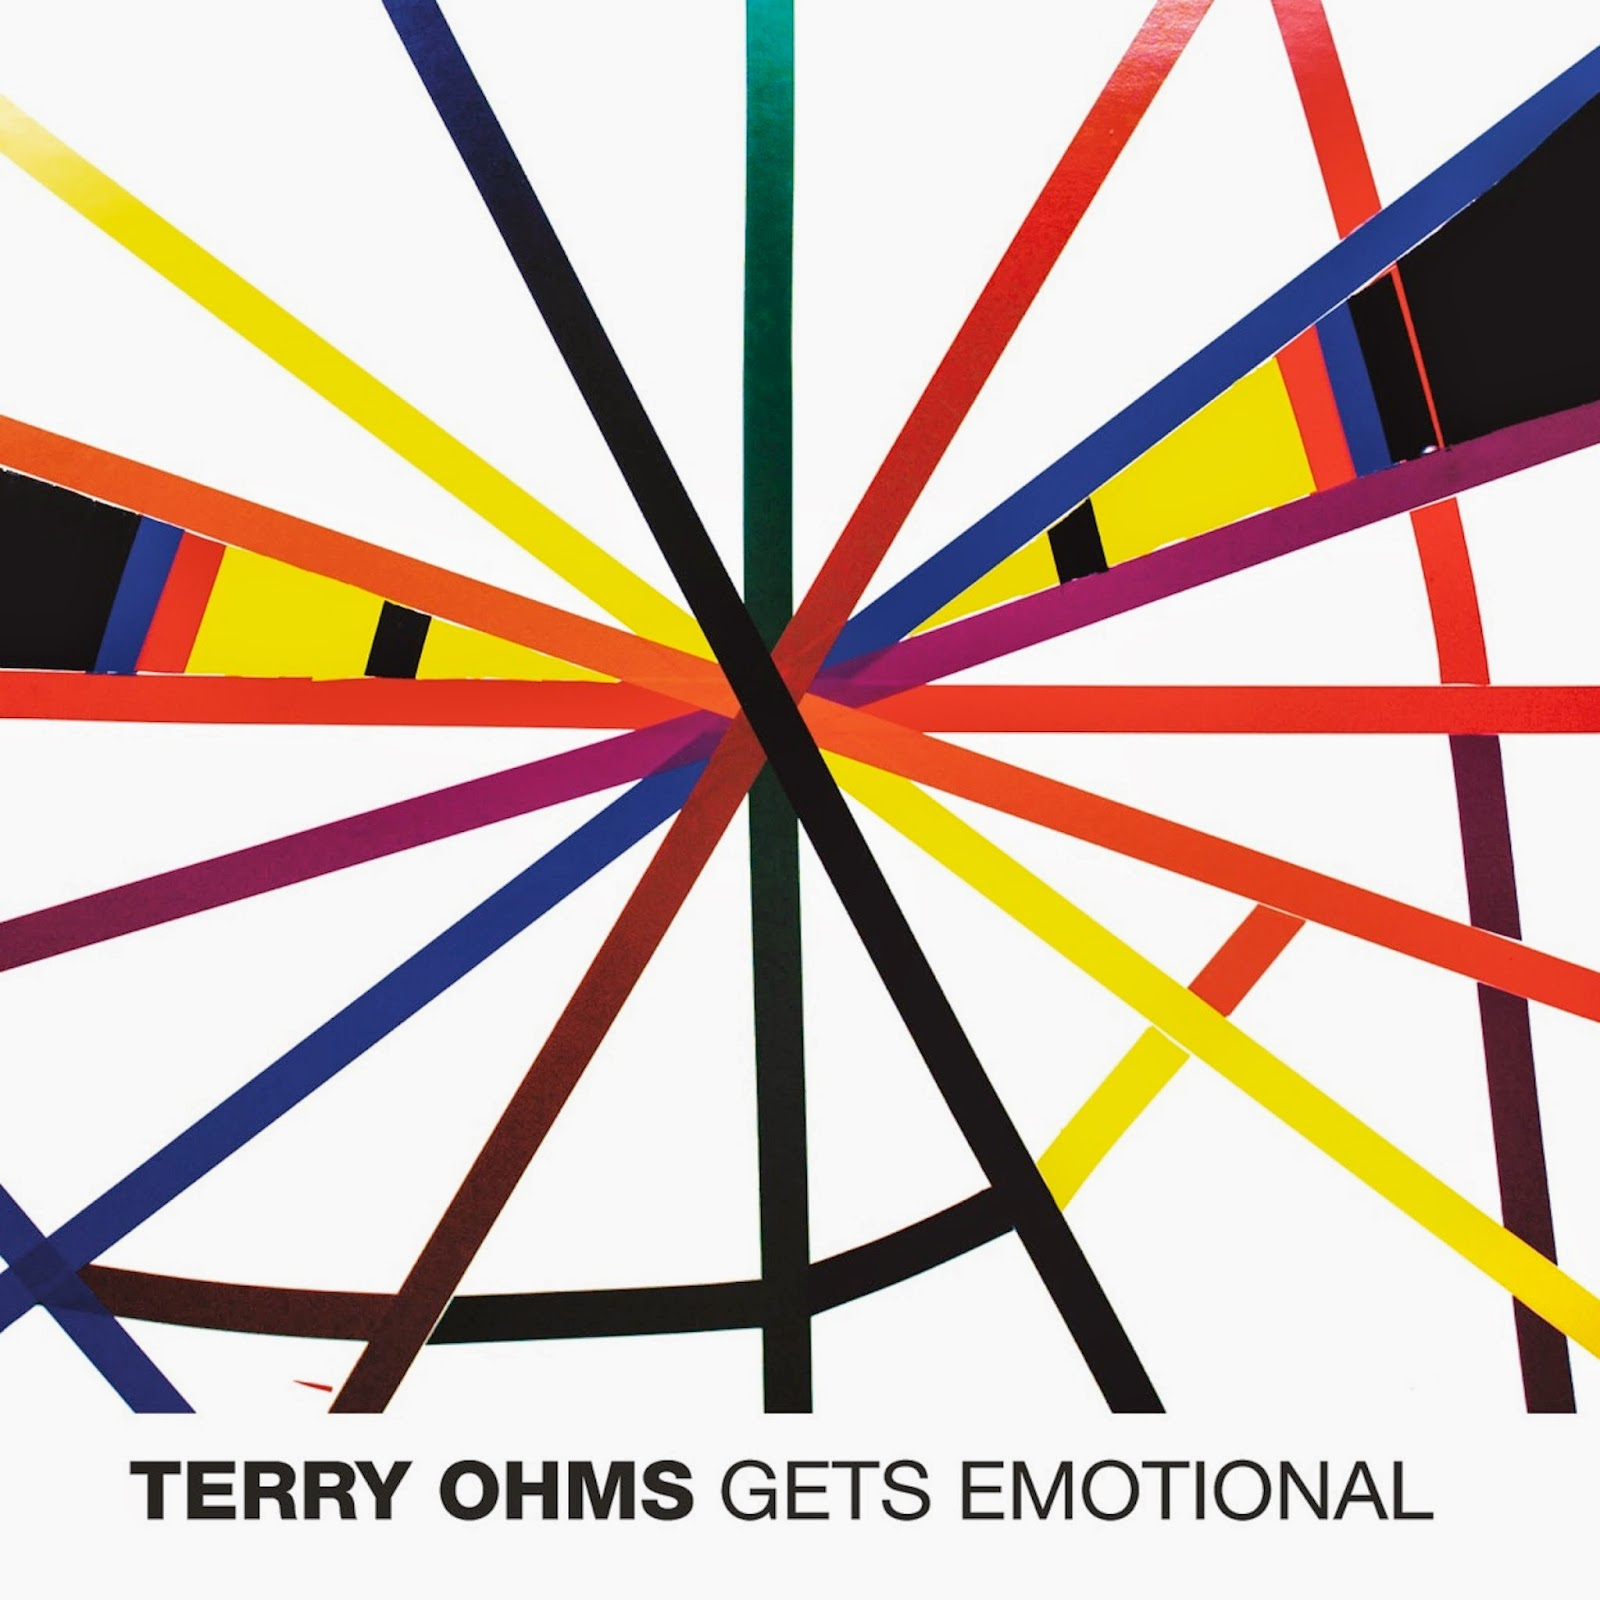 Terry Ohms - Gets Emotional